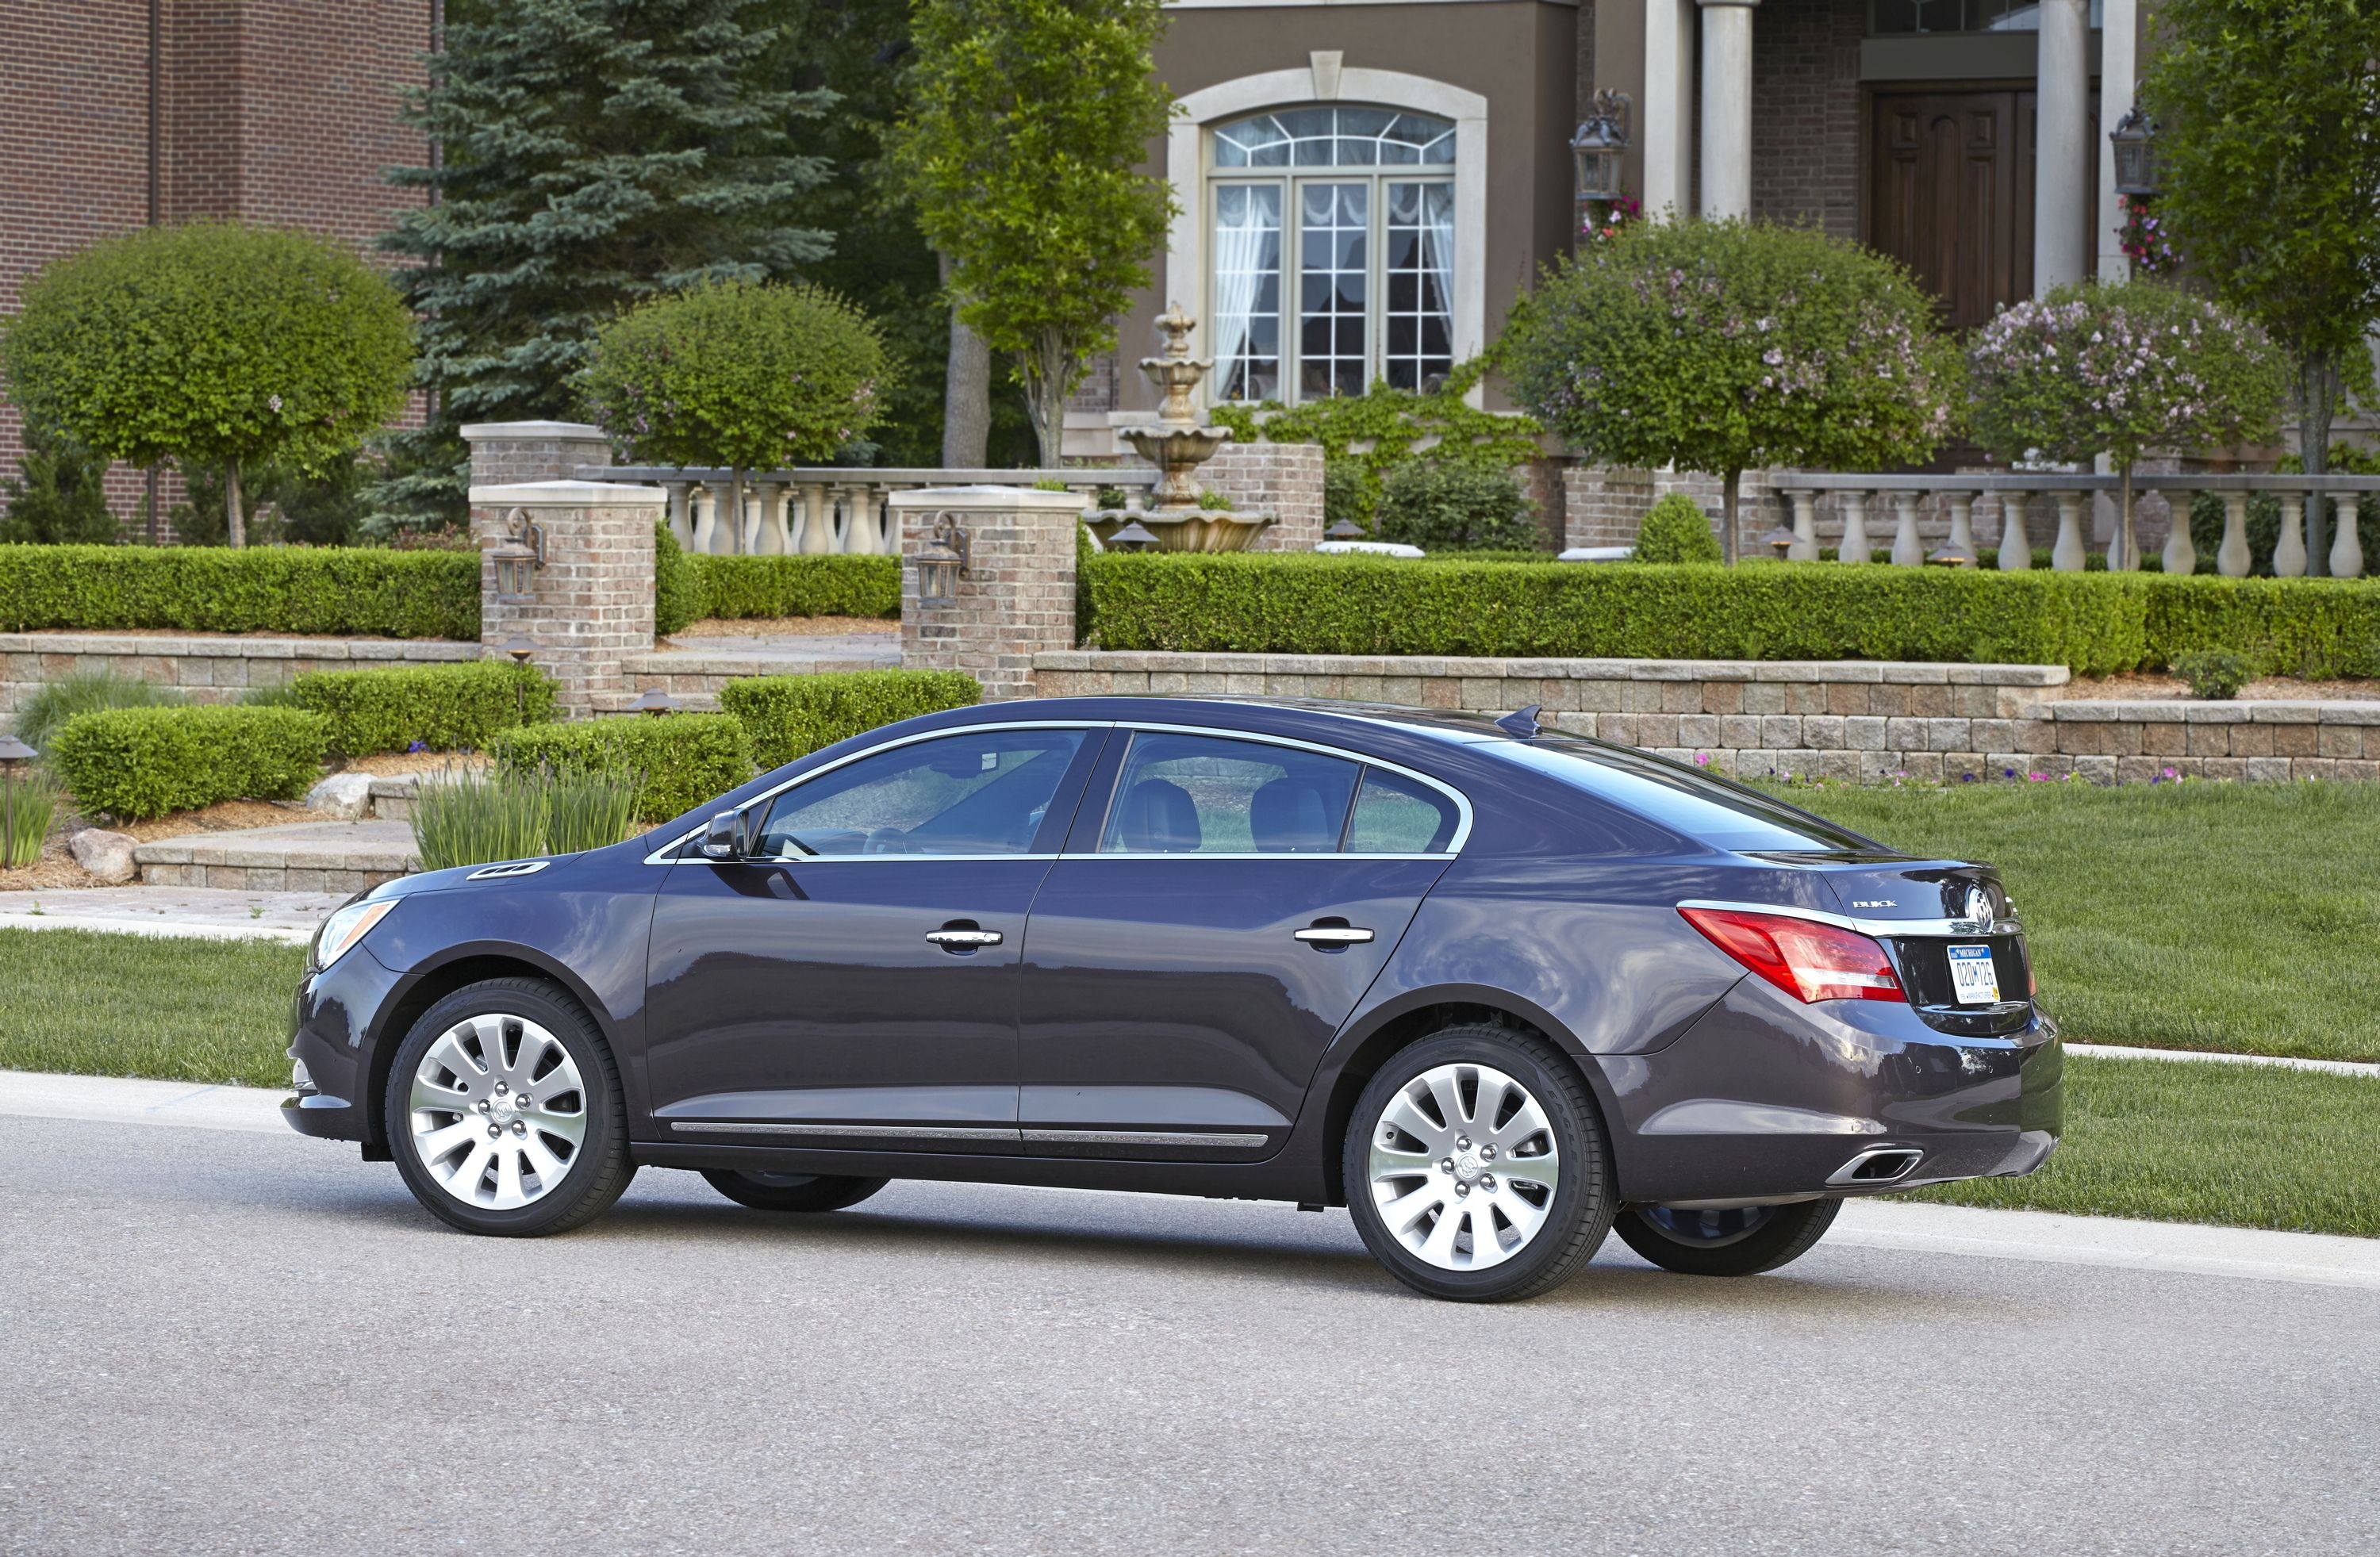 2014 buick lacrosse 1sl awd with midnight amethyst metallic exterior color and 19 alloy wheels